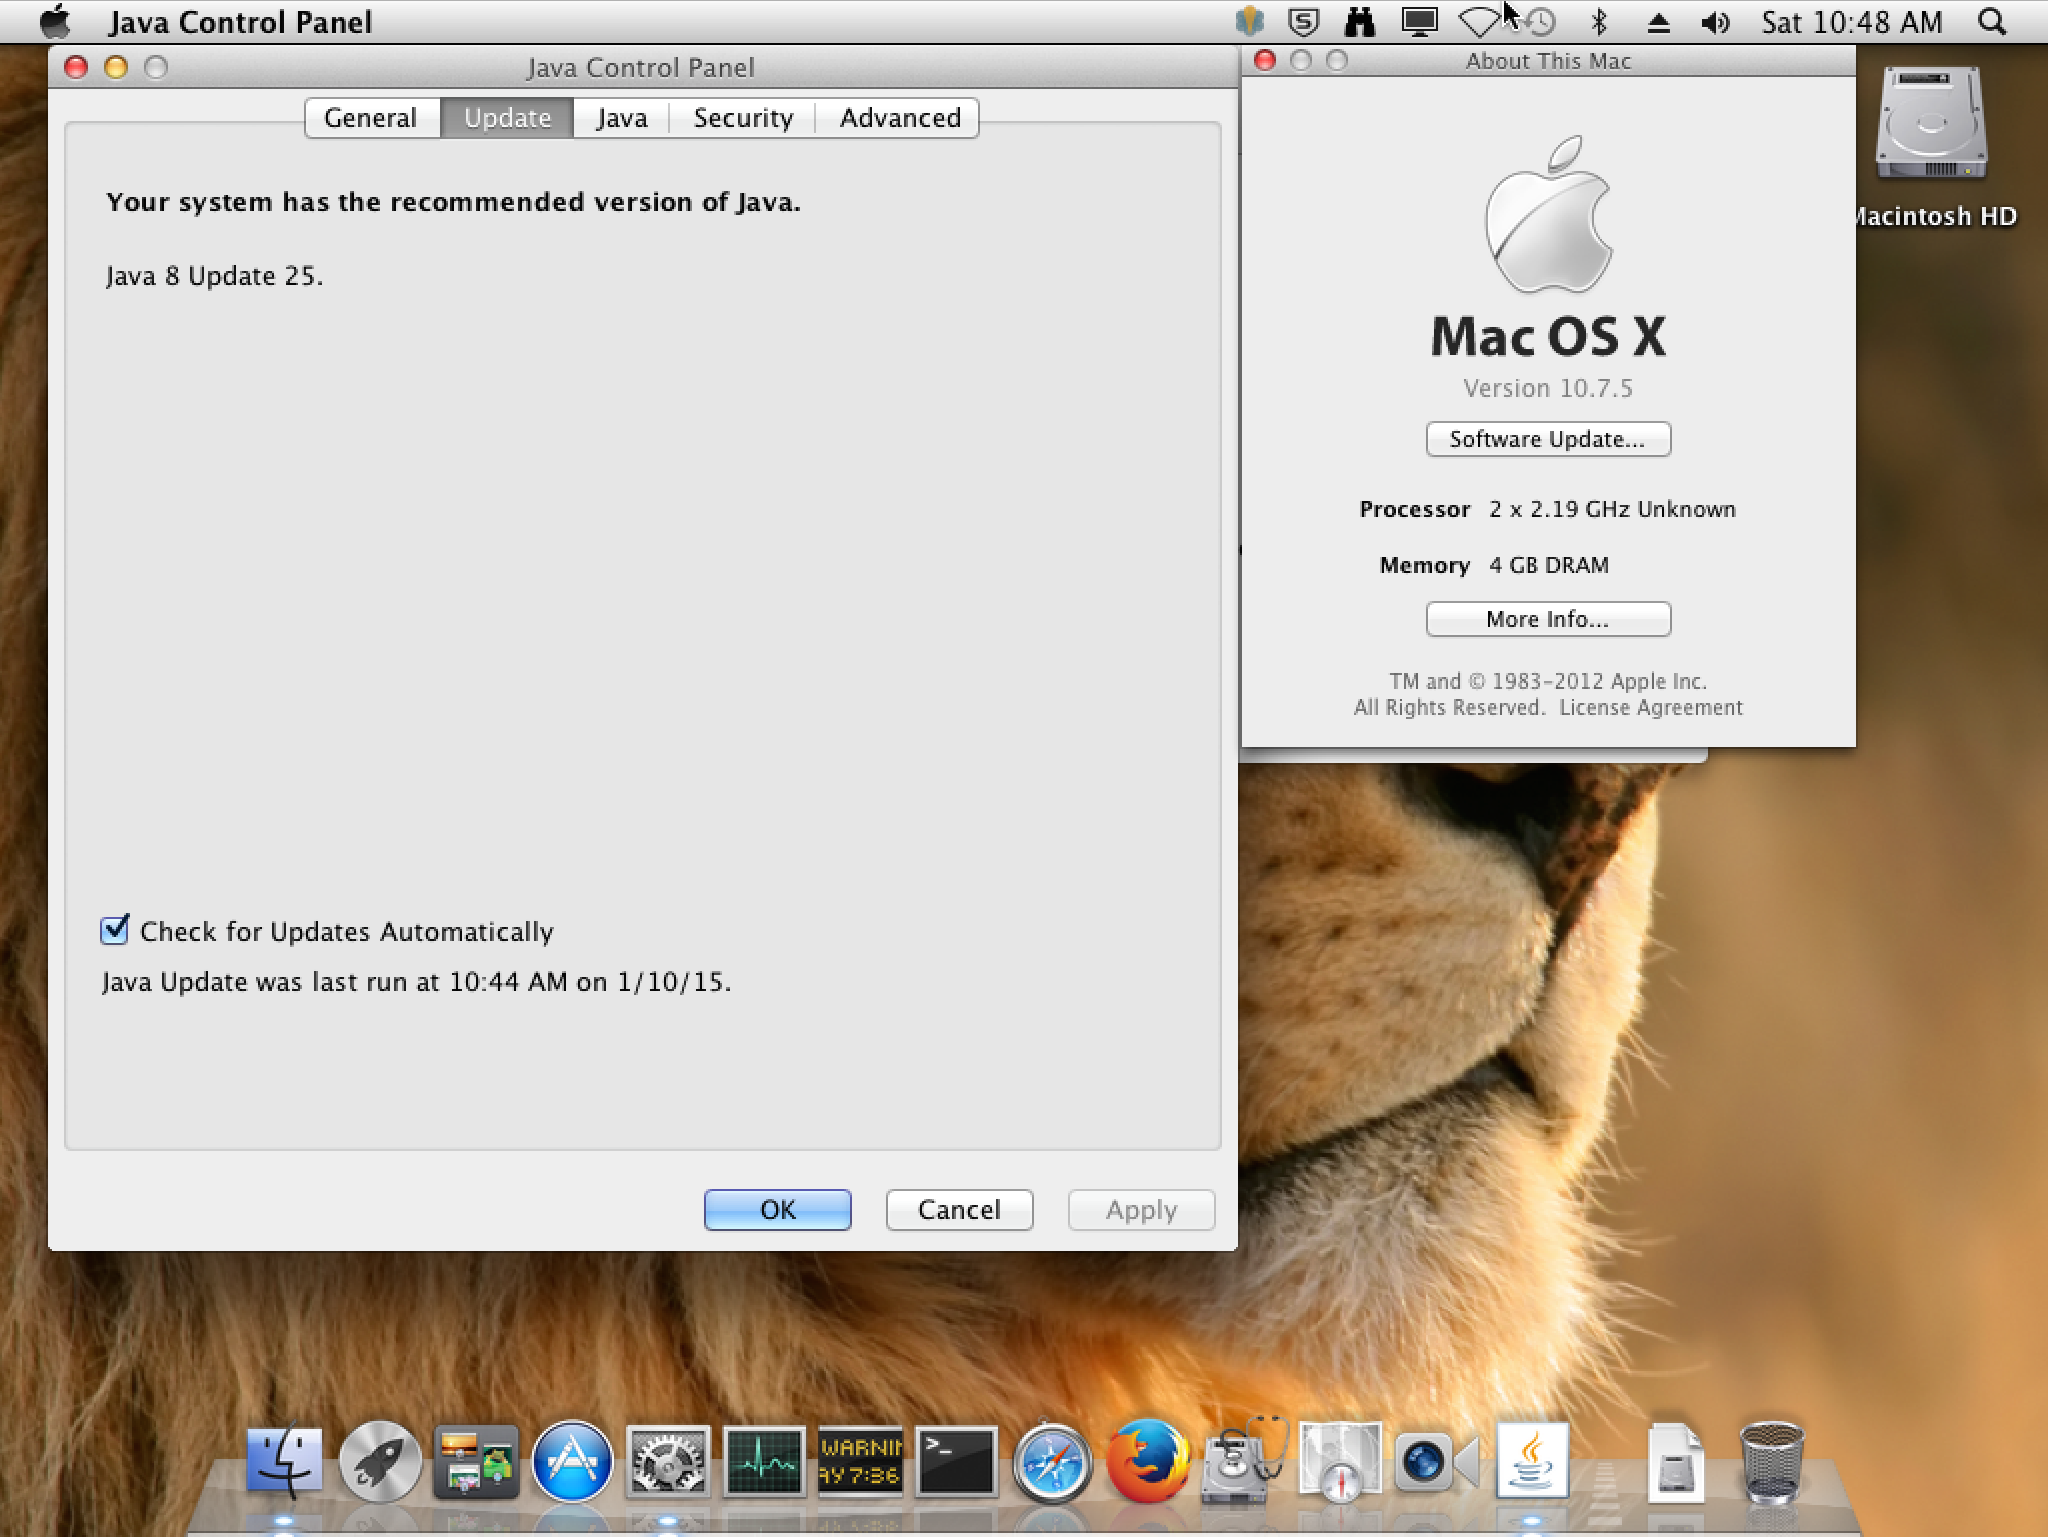 upgrade mac os x 10.7.5 to 10.9